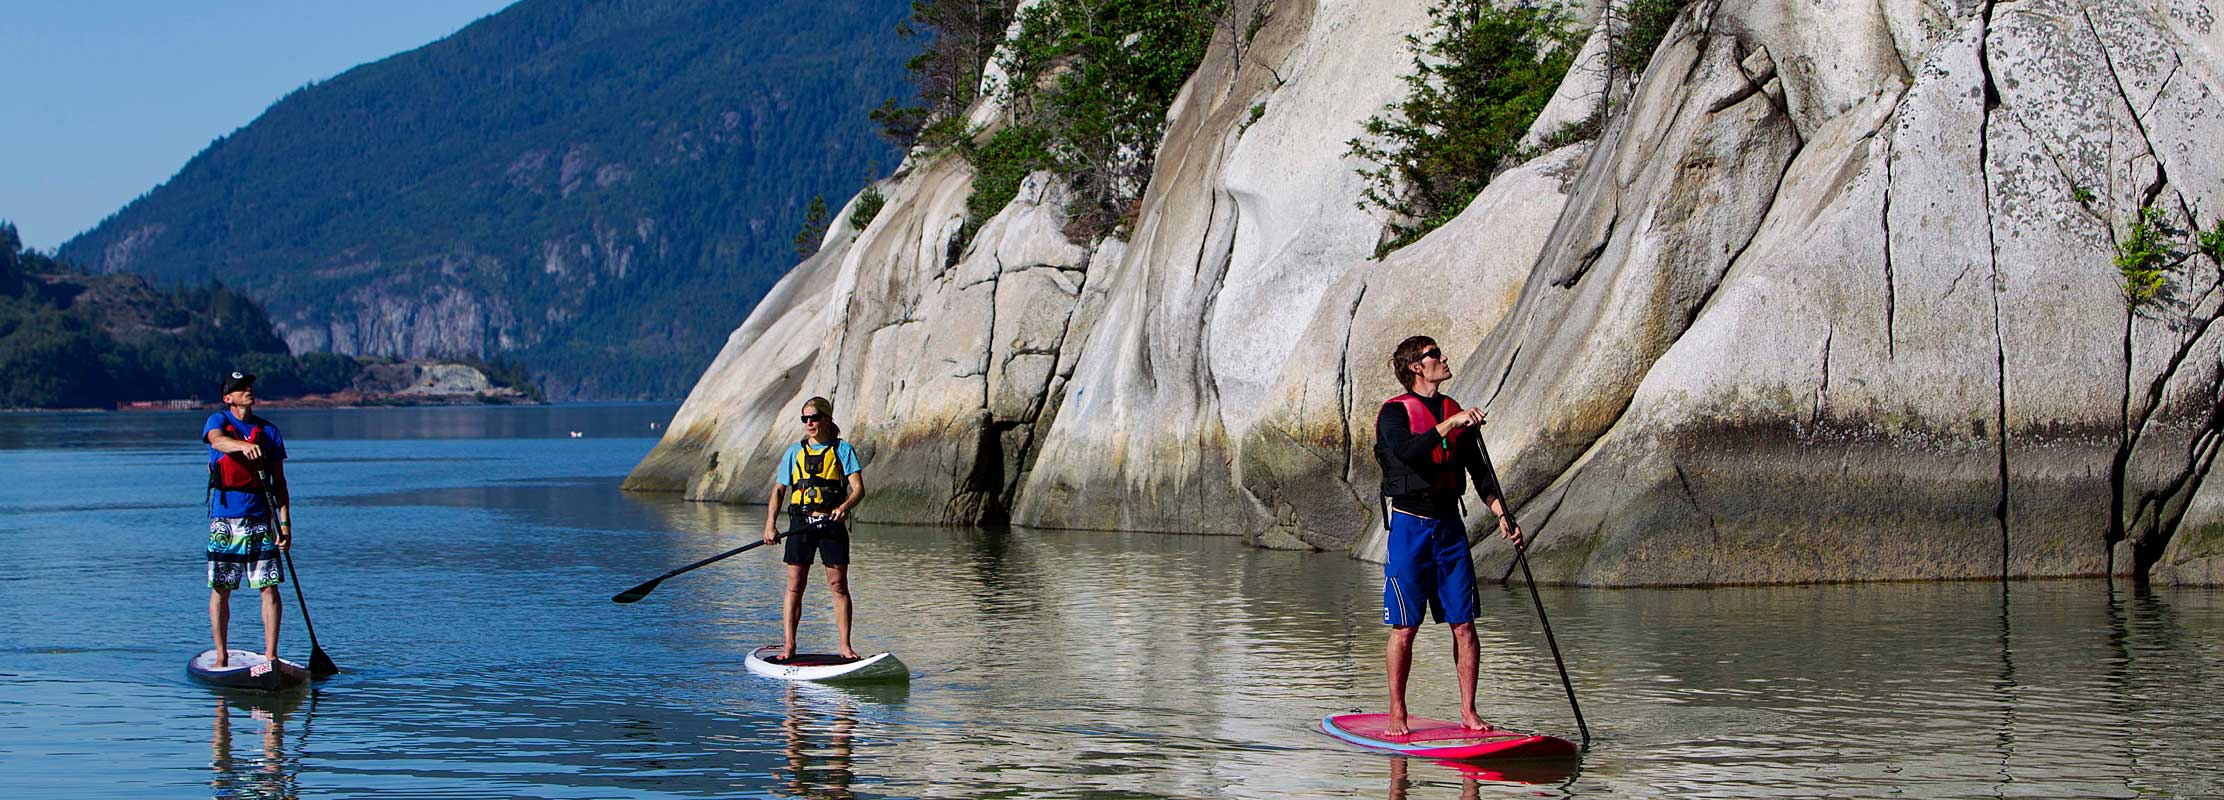 Group Stand Up Paddleboarding in Howe Sound